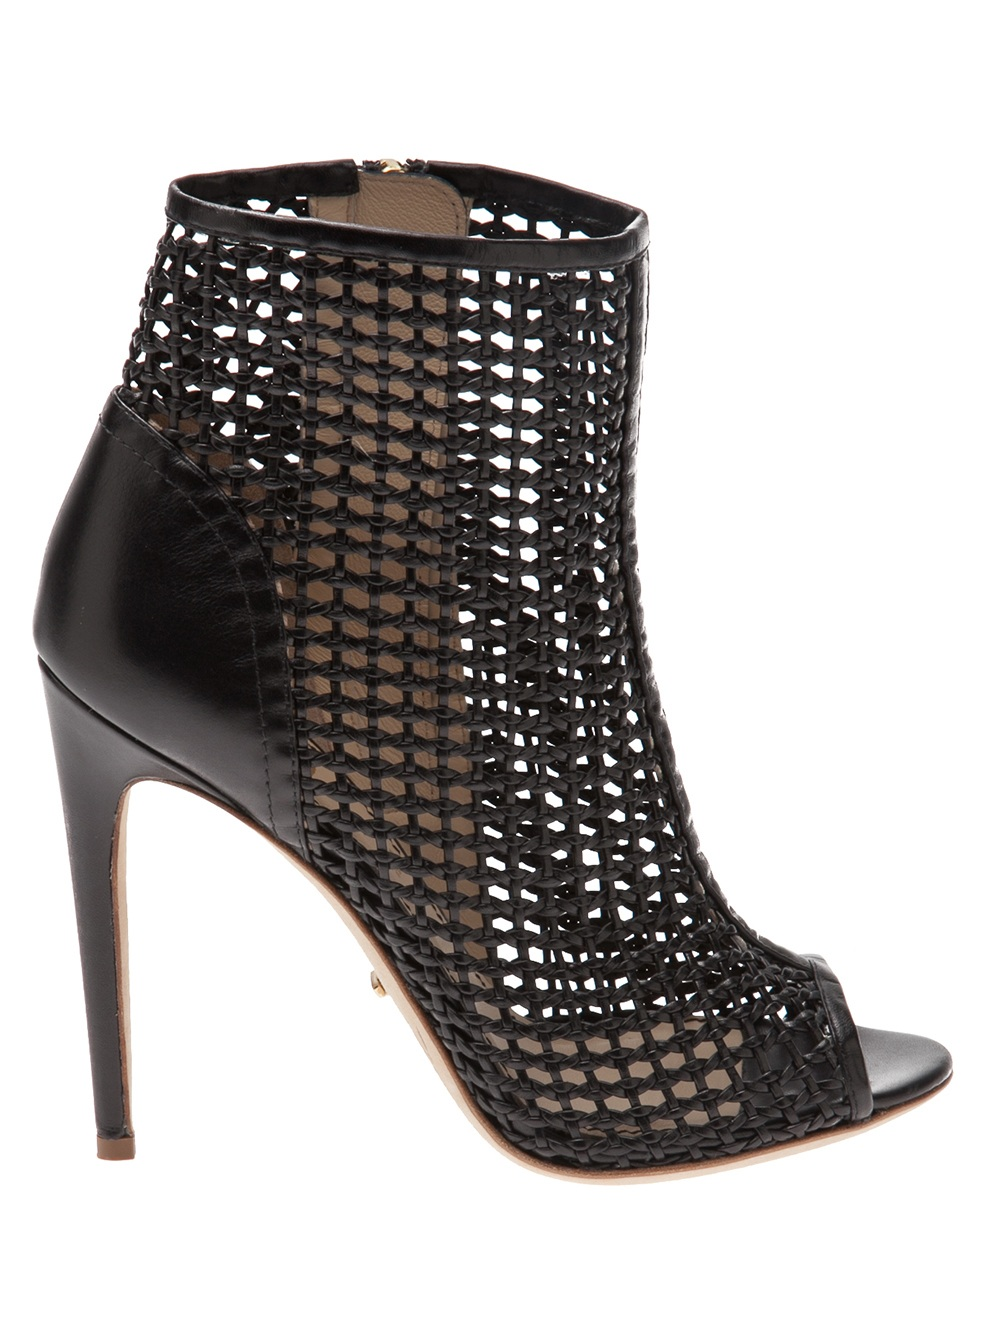 Jerome C. Rousseau Juda Woven Bootie in Black